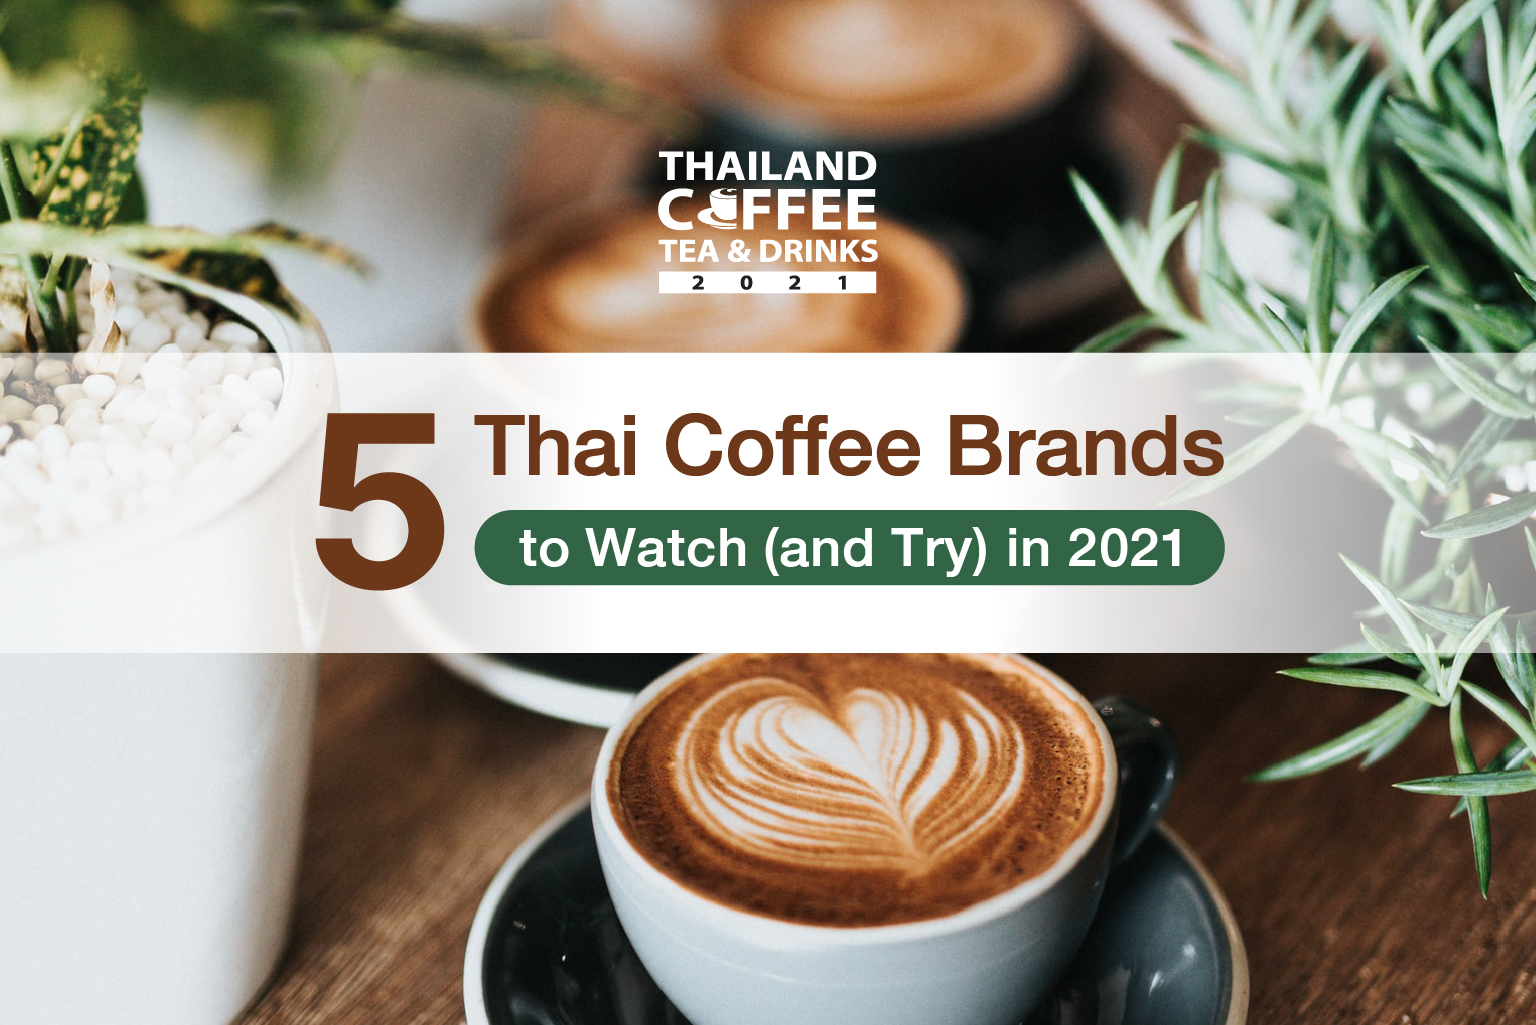 5 Thai Coffee Brands to Watch (and Try) in 2021